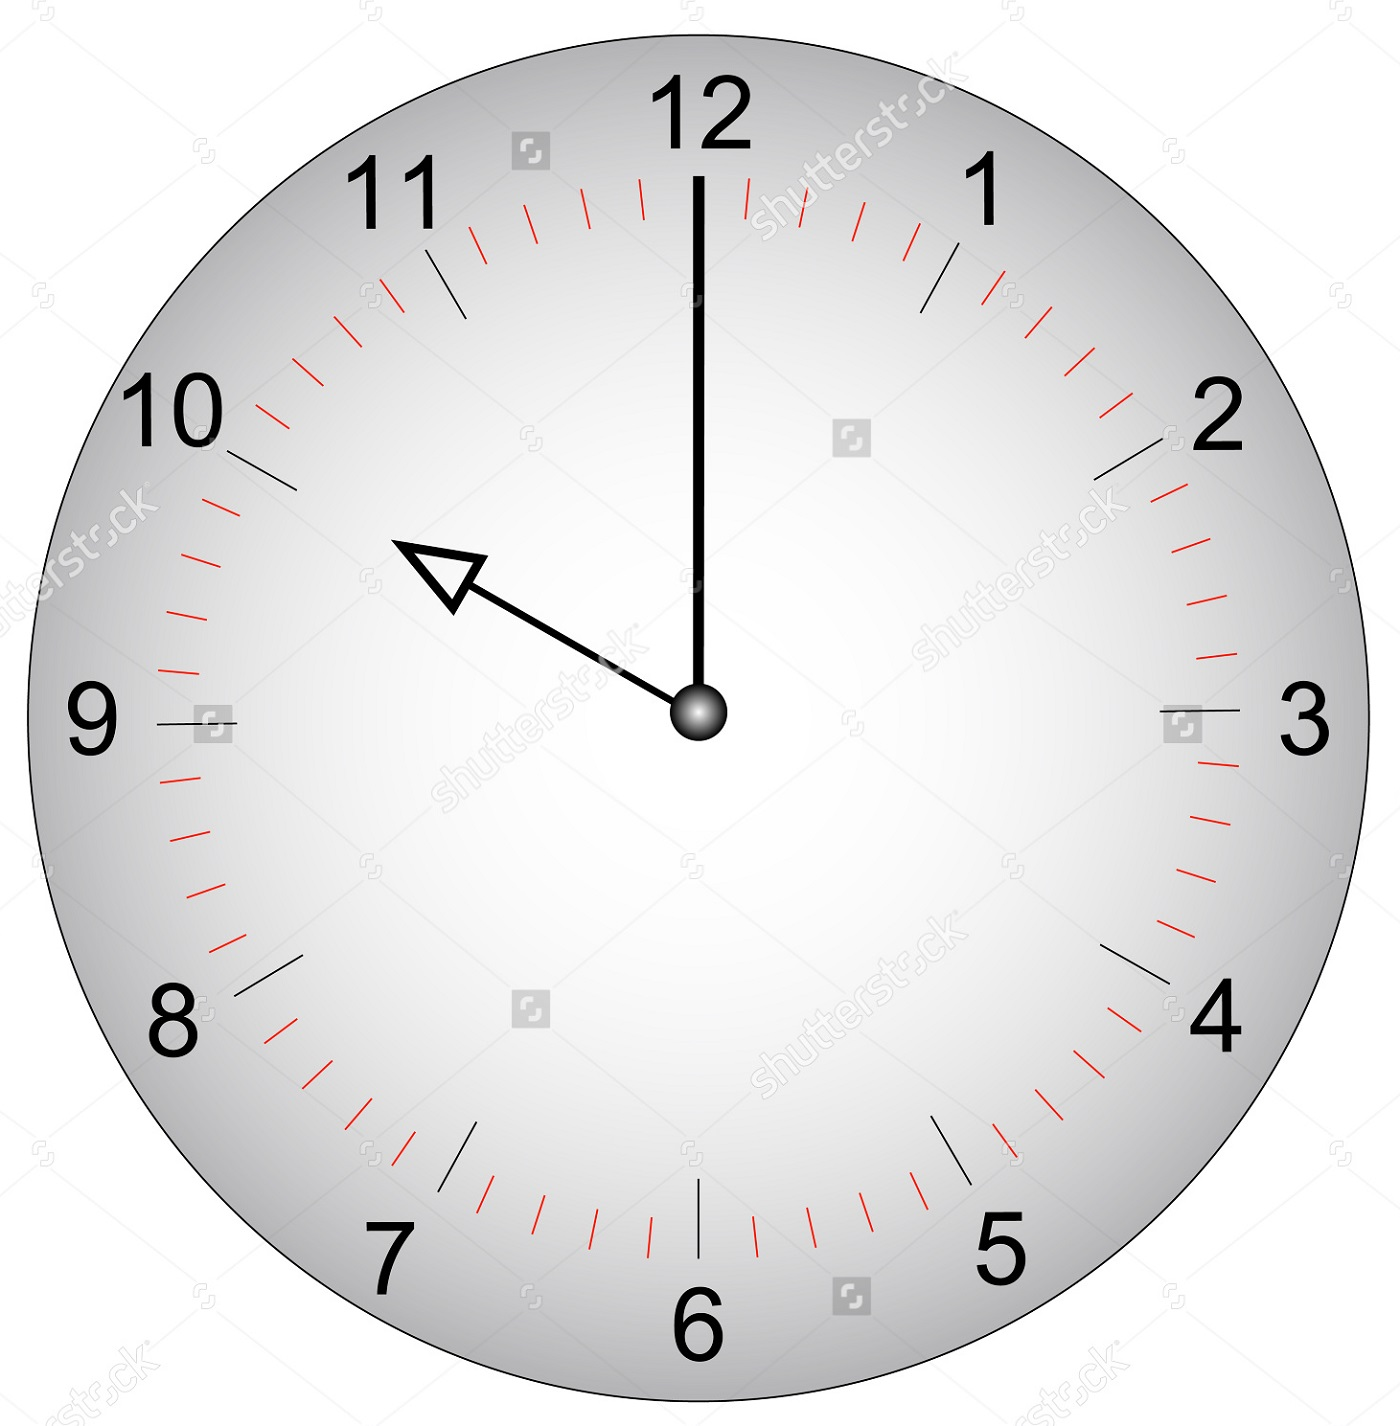 Face Of A Clock With Minutes Marked Learning Printable